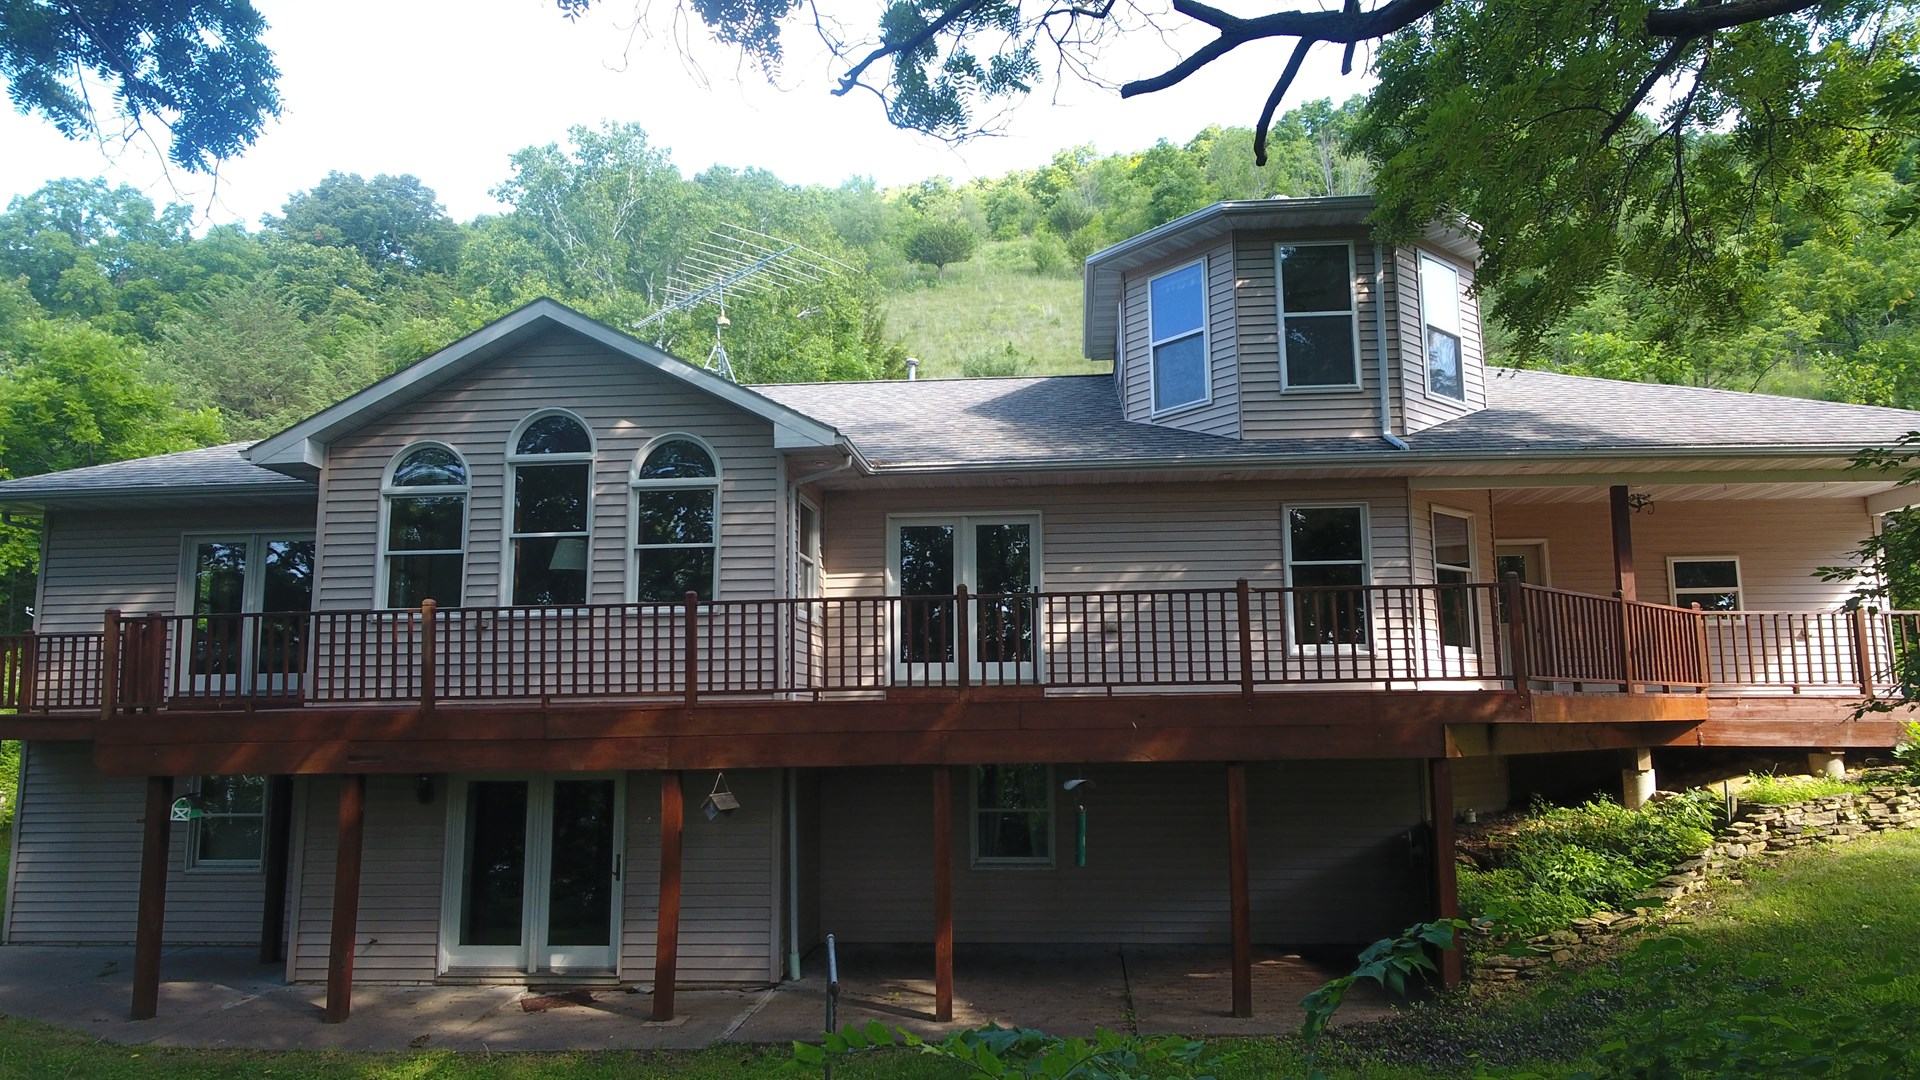 4 BR 3 BA country home on 23 acres for sale in WI